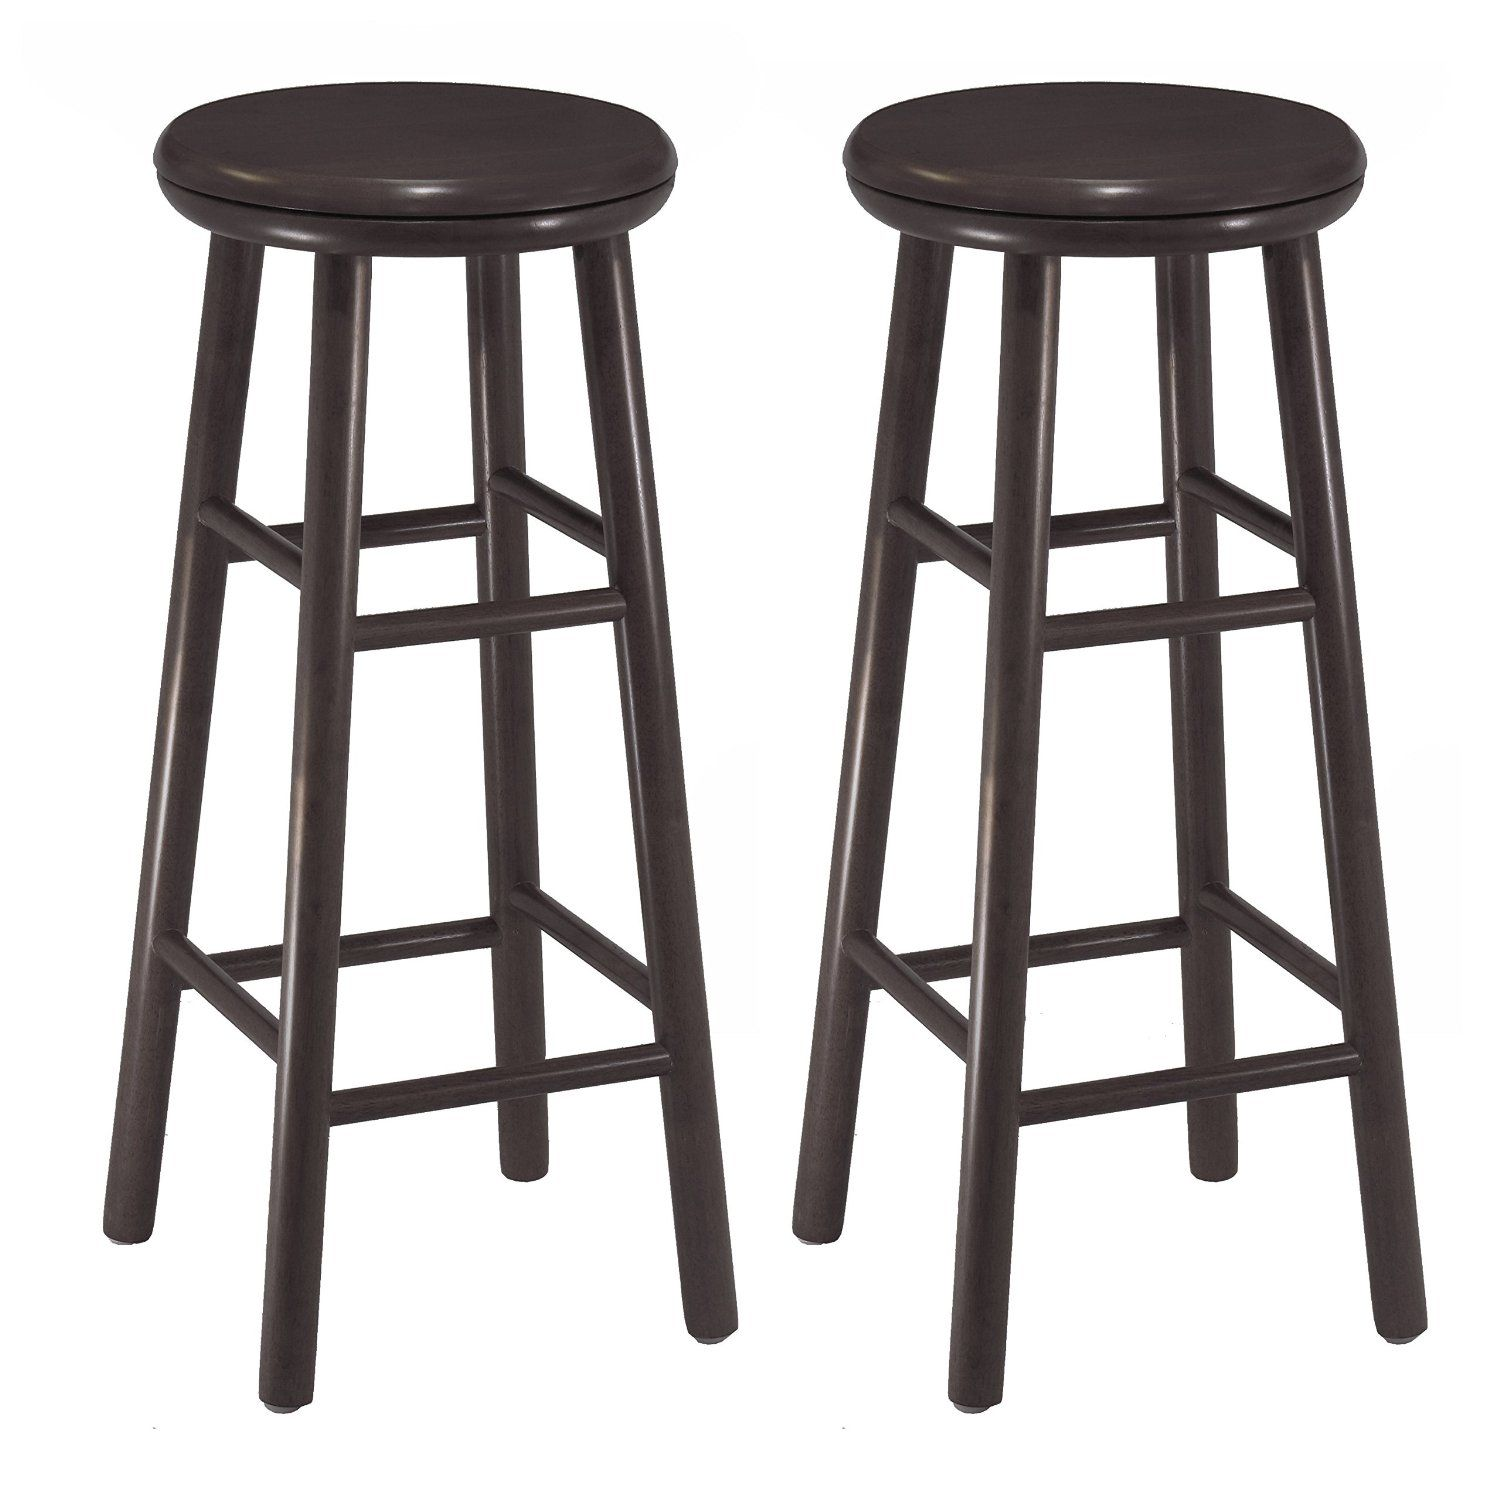 Amazonsmile Winsome Wood 30 Inch Swivel Bar Stools Dark Espresso